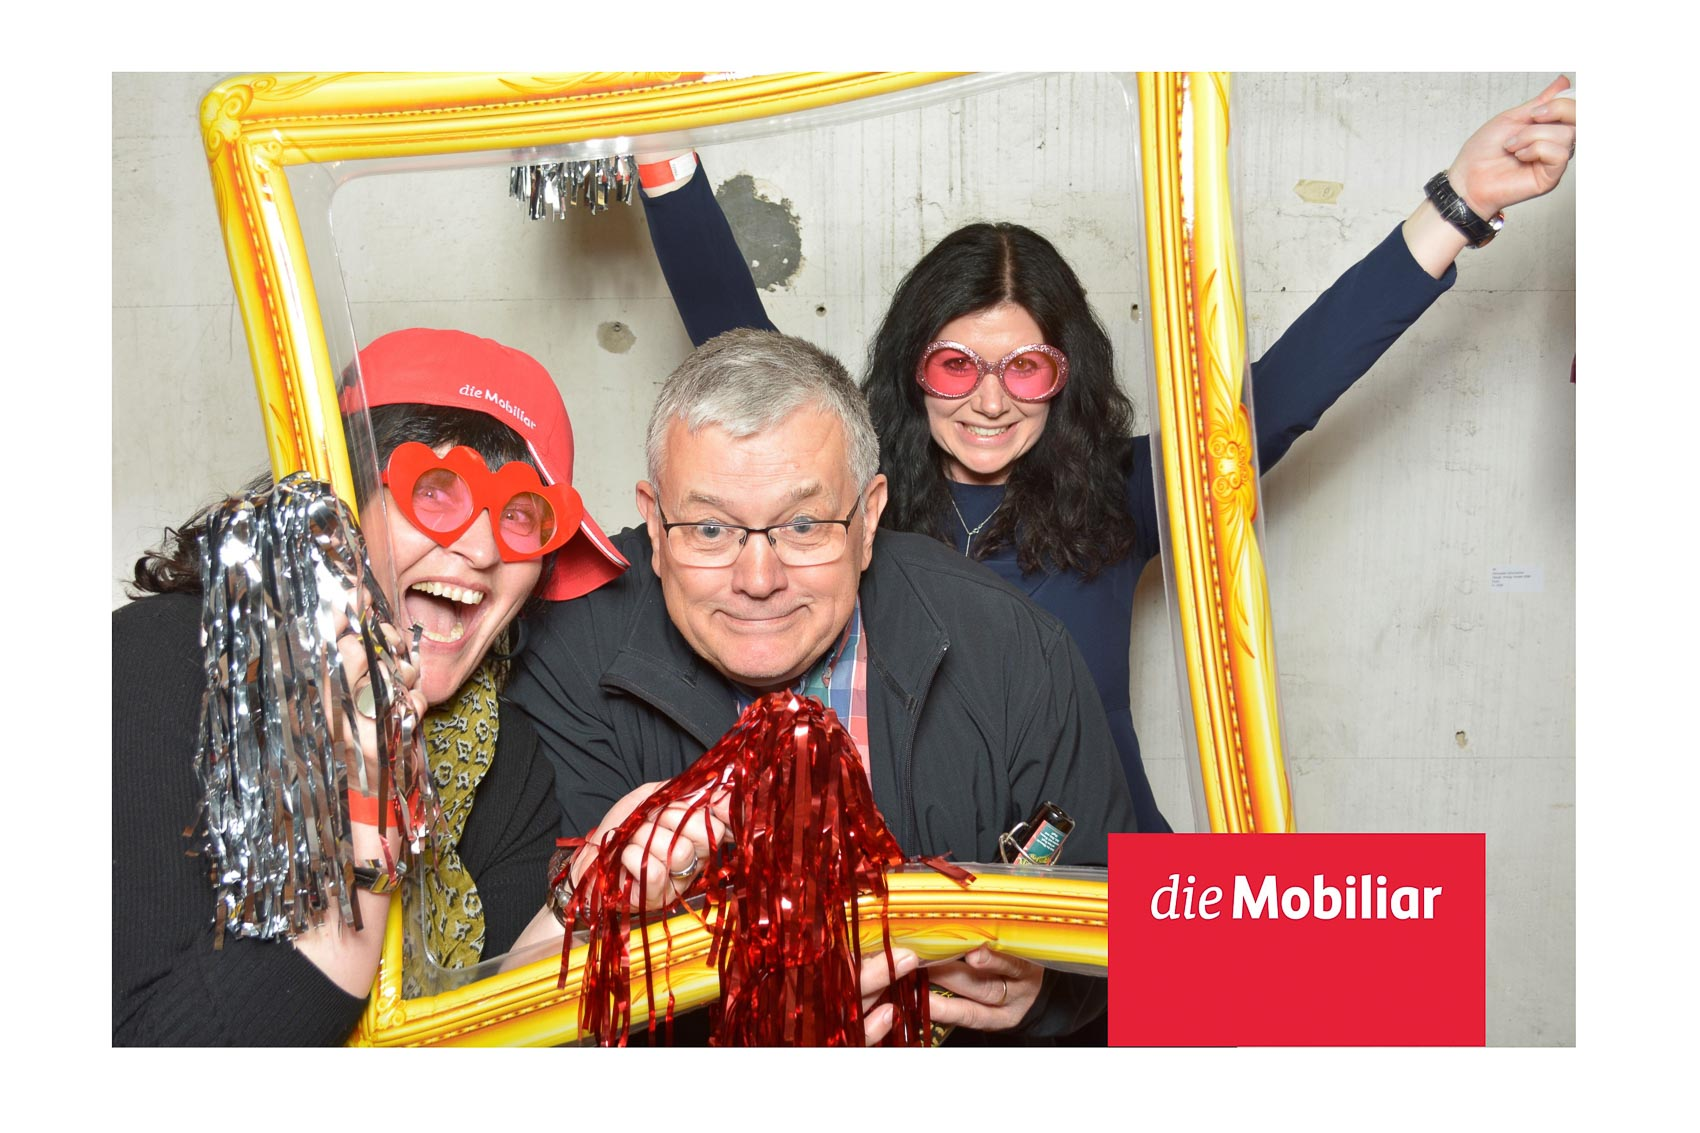 Photo-Booth-Baschung-Fotografie-Event-23.jpg